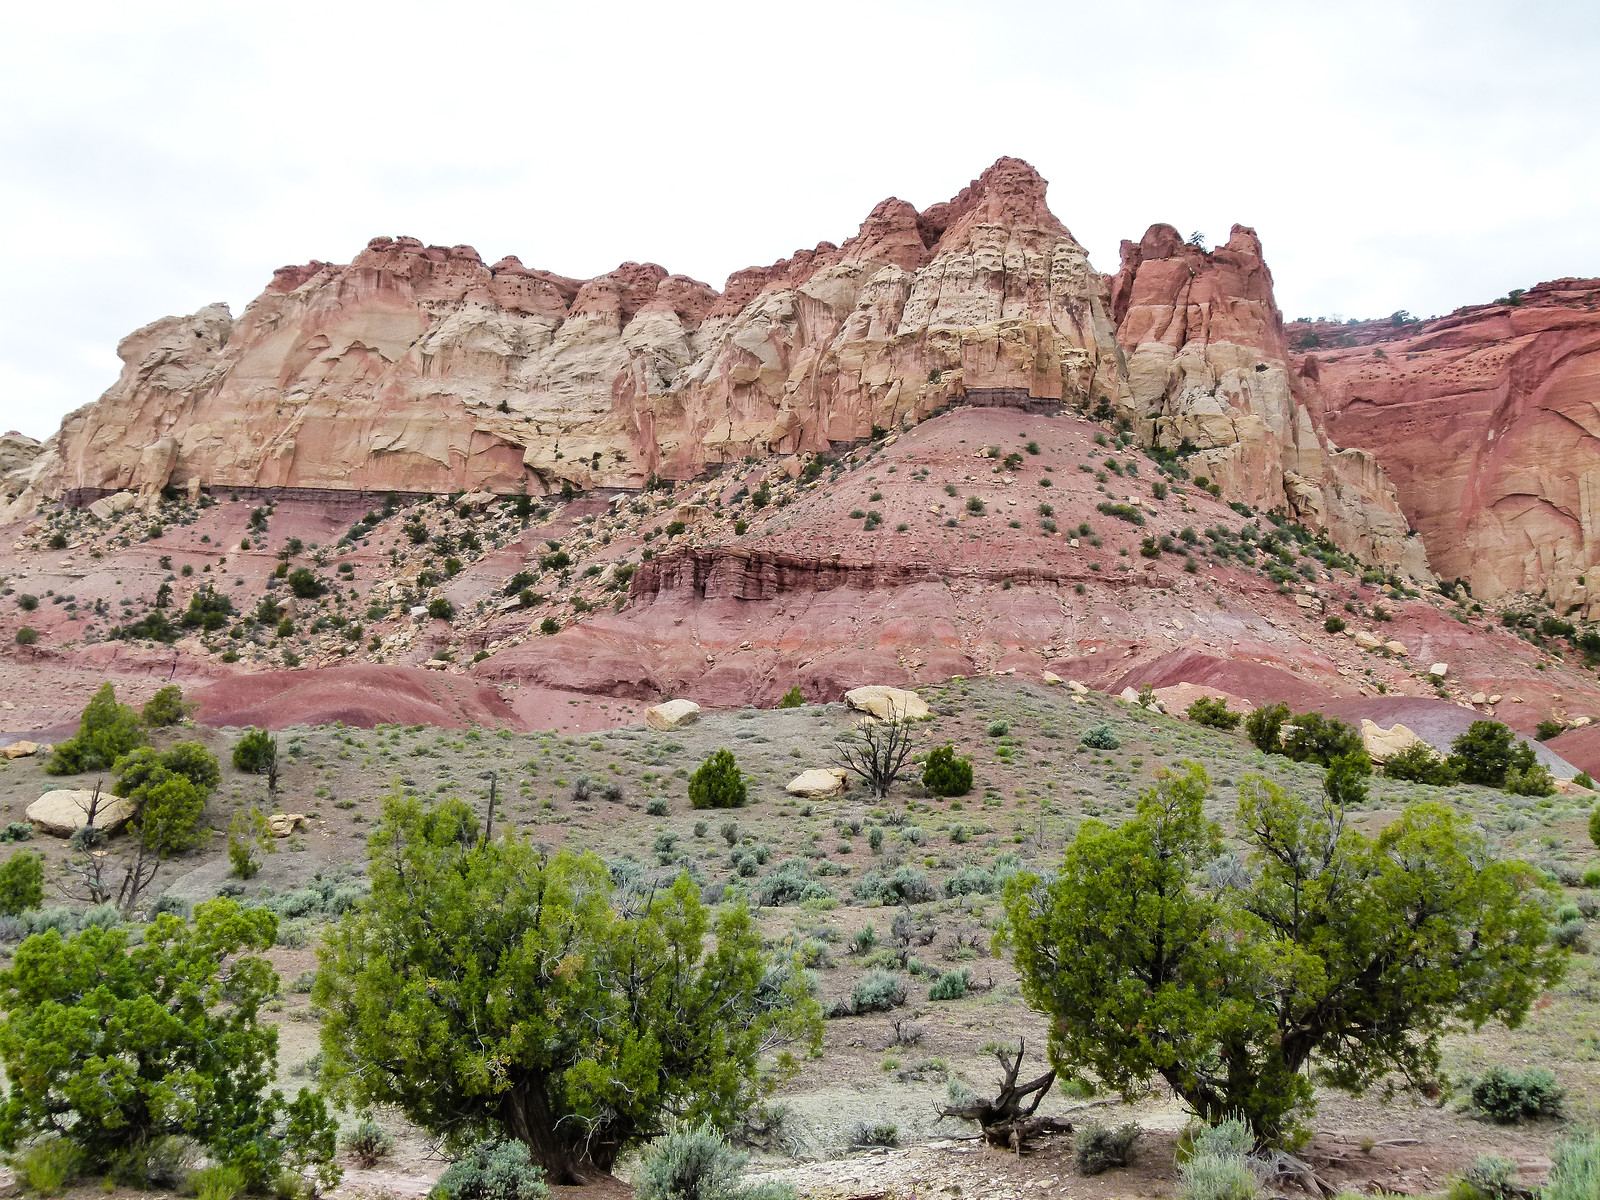 The rocks are pink, sage brush covers the ground and the trees are stunted in the high desert country on the Burr Trail.